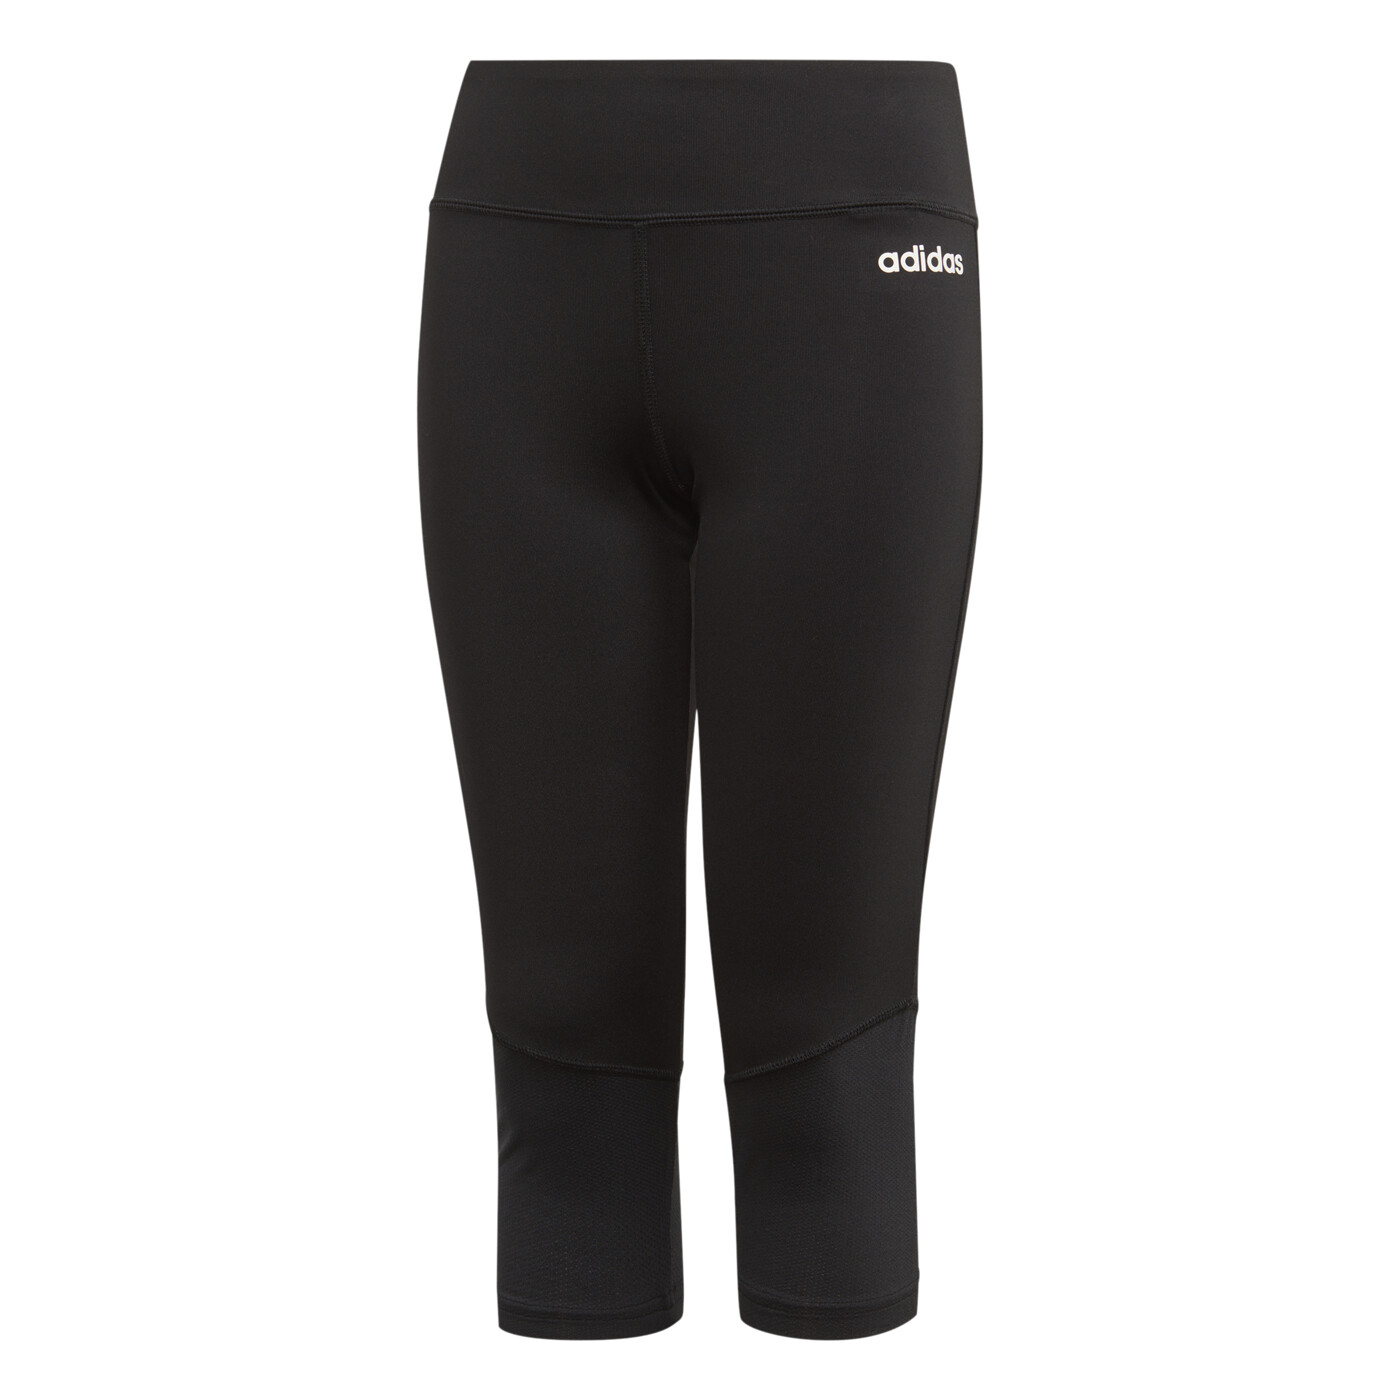 ADIDAS YG C 3/4 Tight - Damen